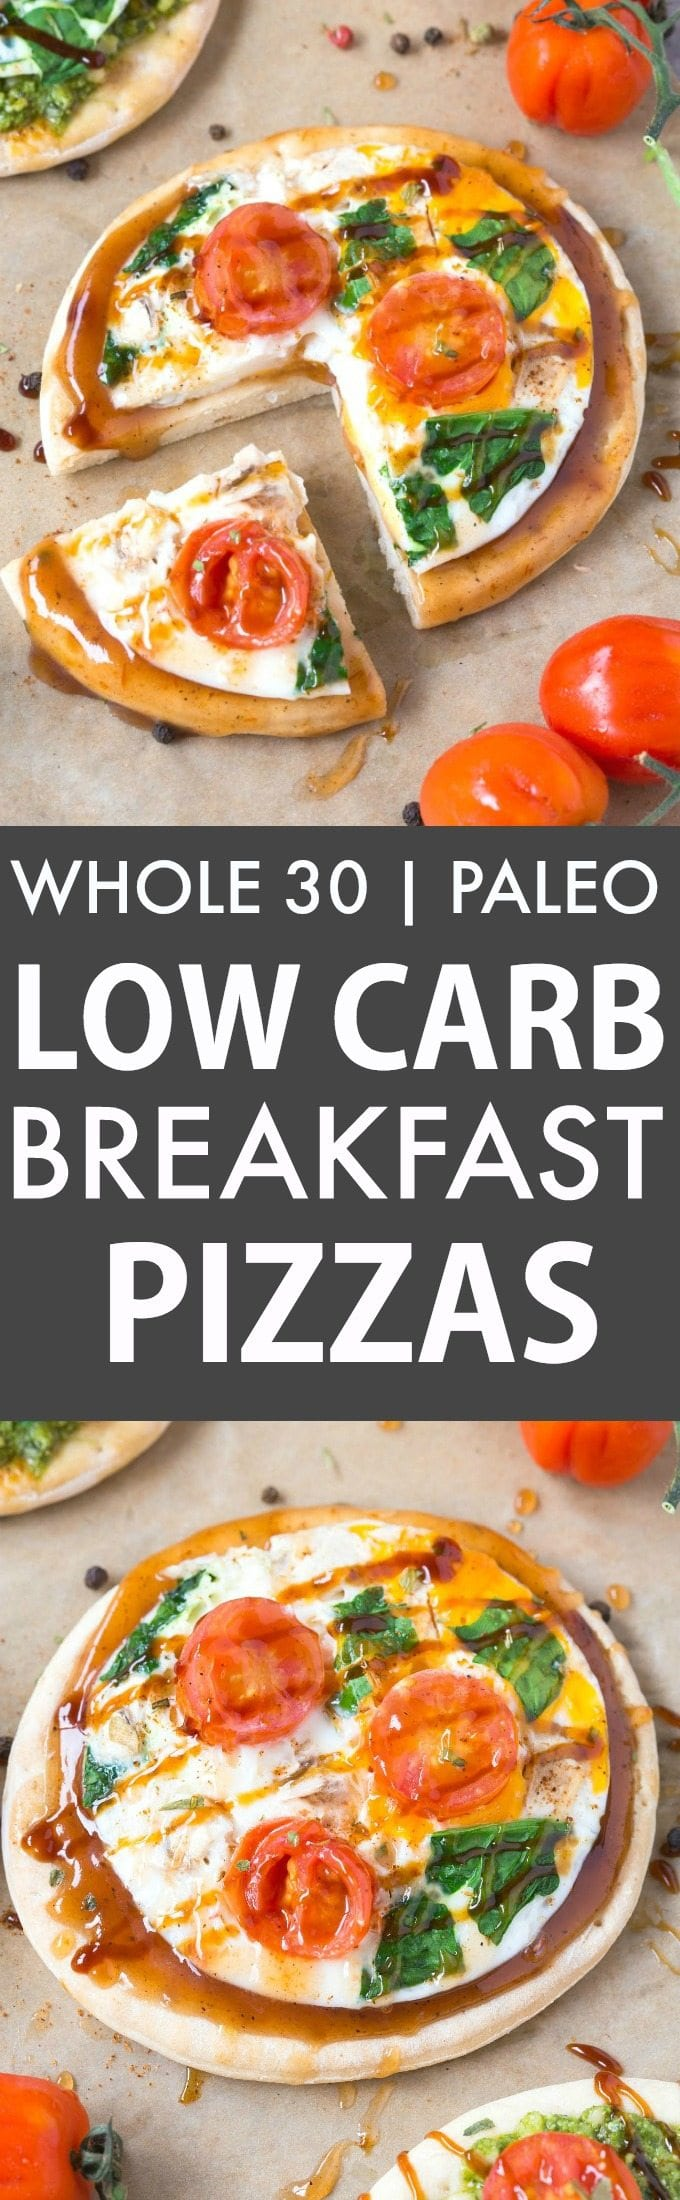 Healthy Low Carb Breakfast Pizzas Whole30 Paleo GF Compliant